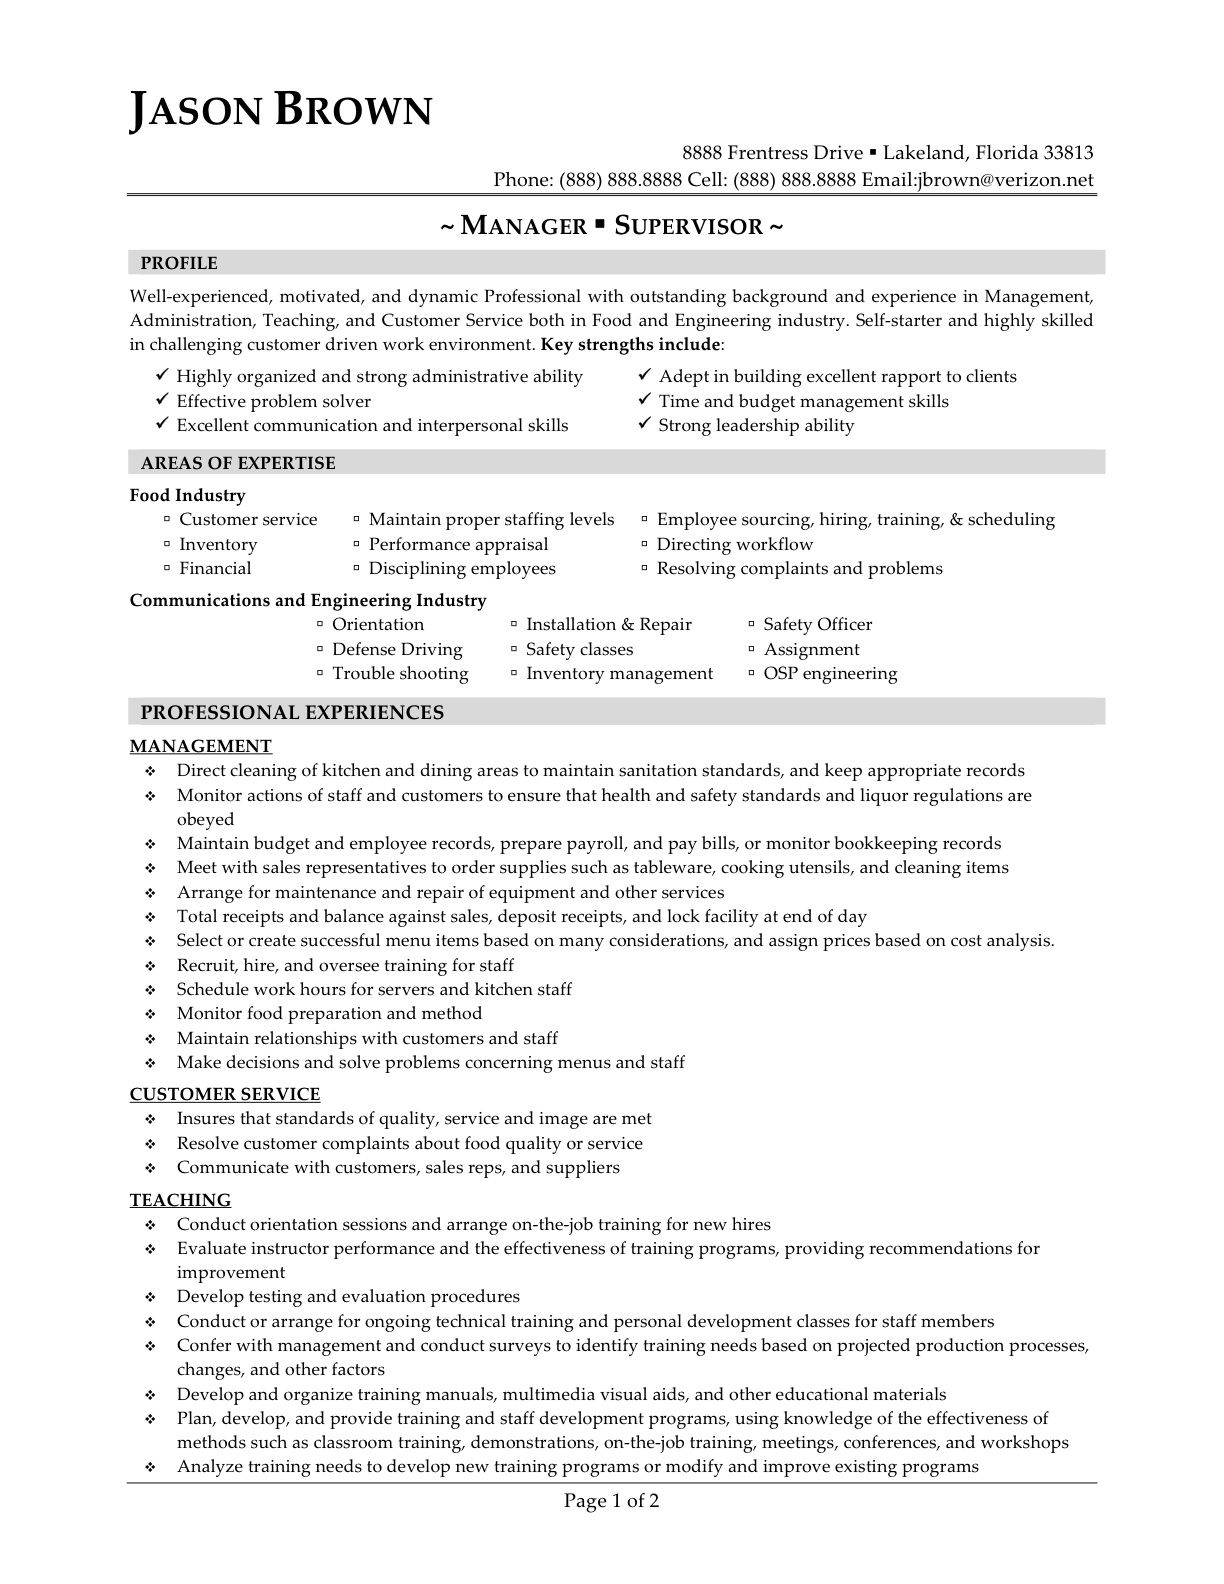 Resume Objective For Retail Supervisor Resume Sample Free Call Center Supervisor Resume Sample